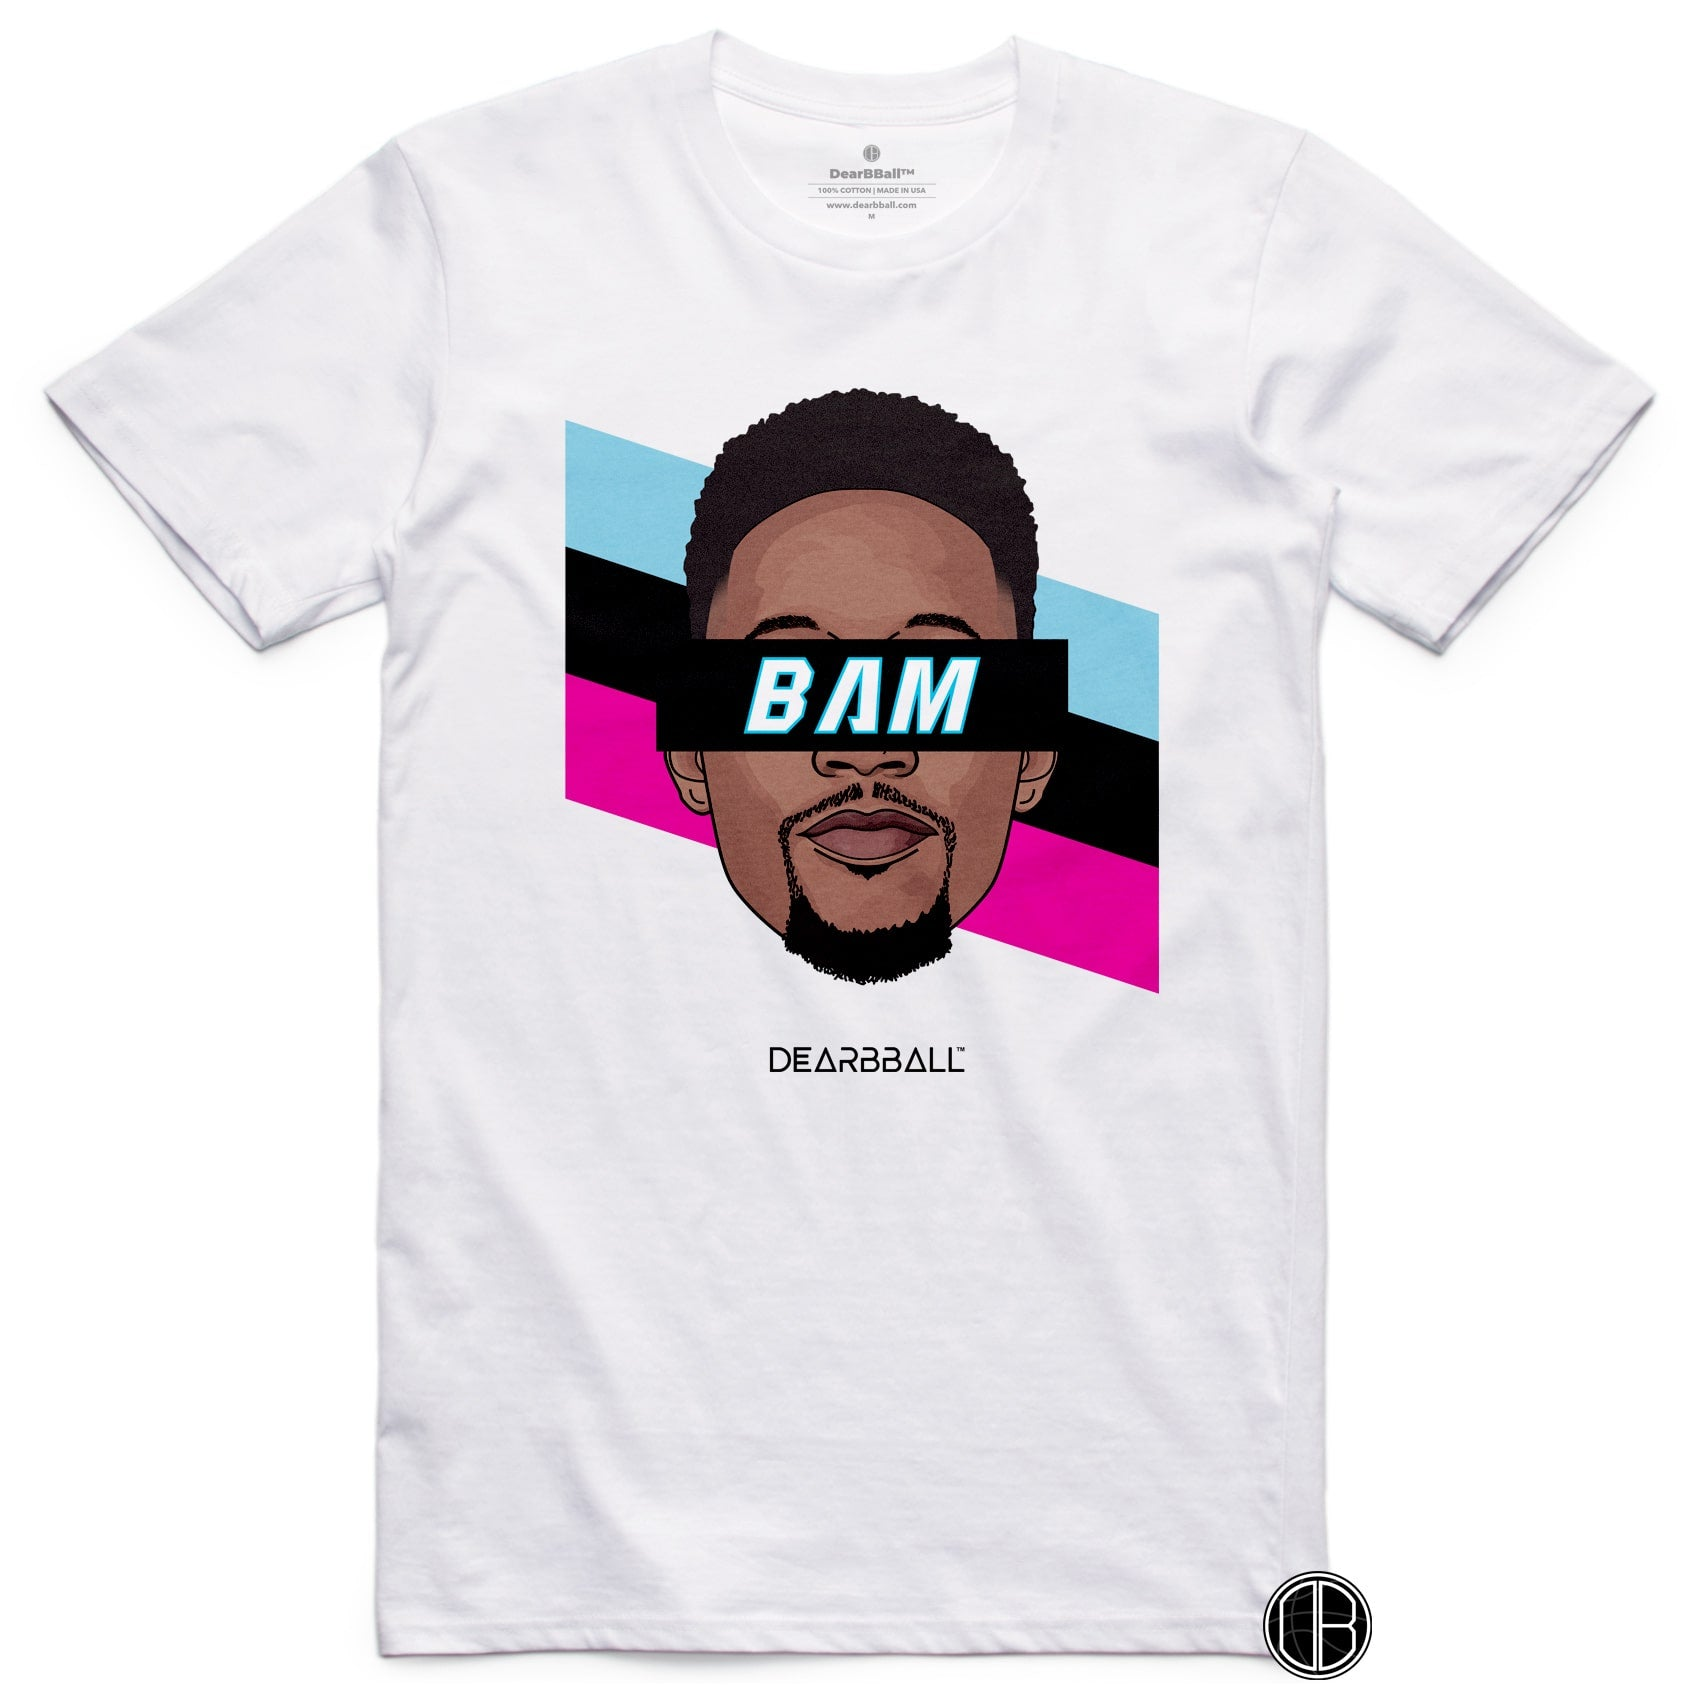 Bam-Adebayo-T-Shirt-BAM-Miami-Heat-Stripes-Limited-Edition-Basketball-Dearbball